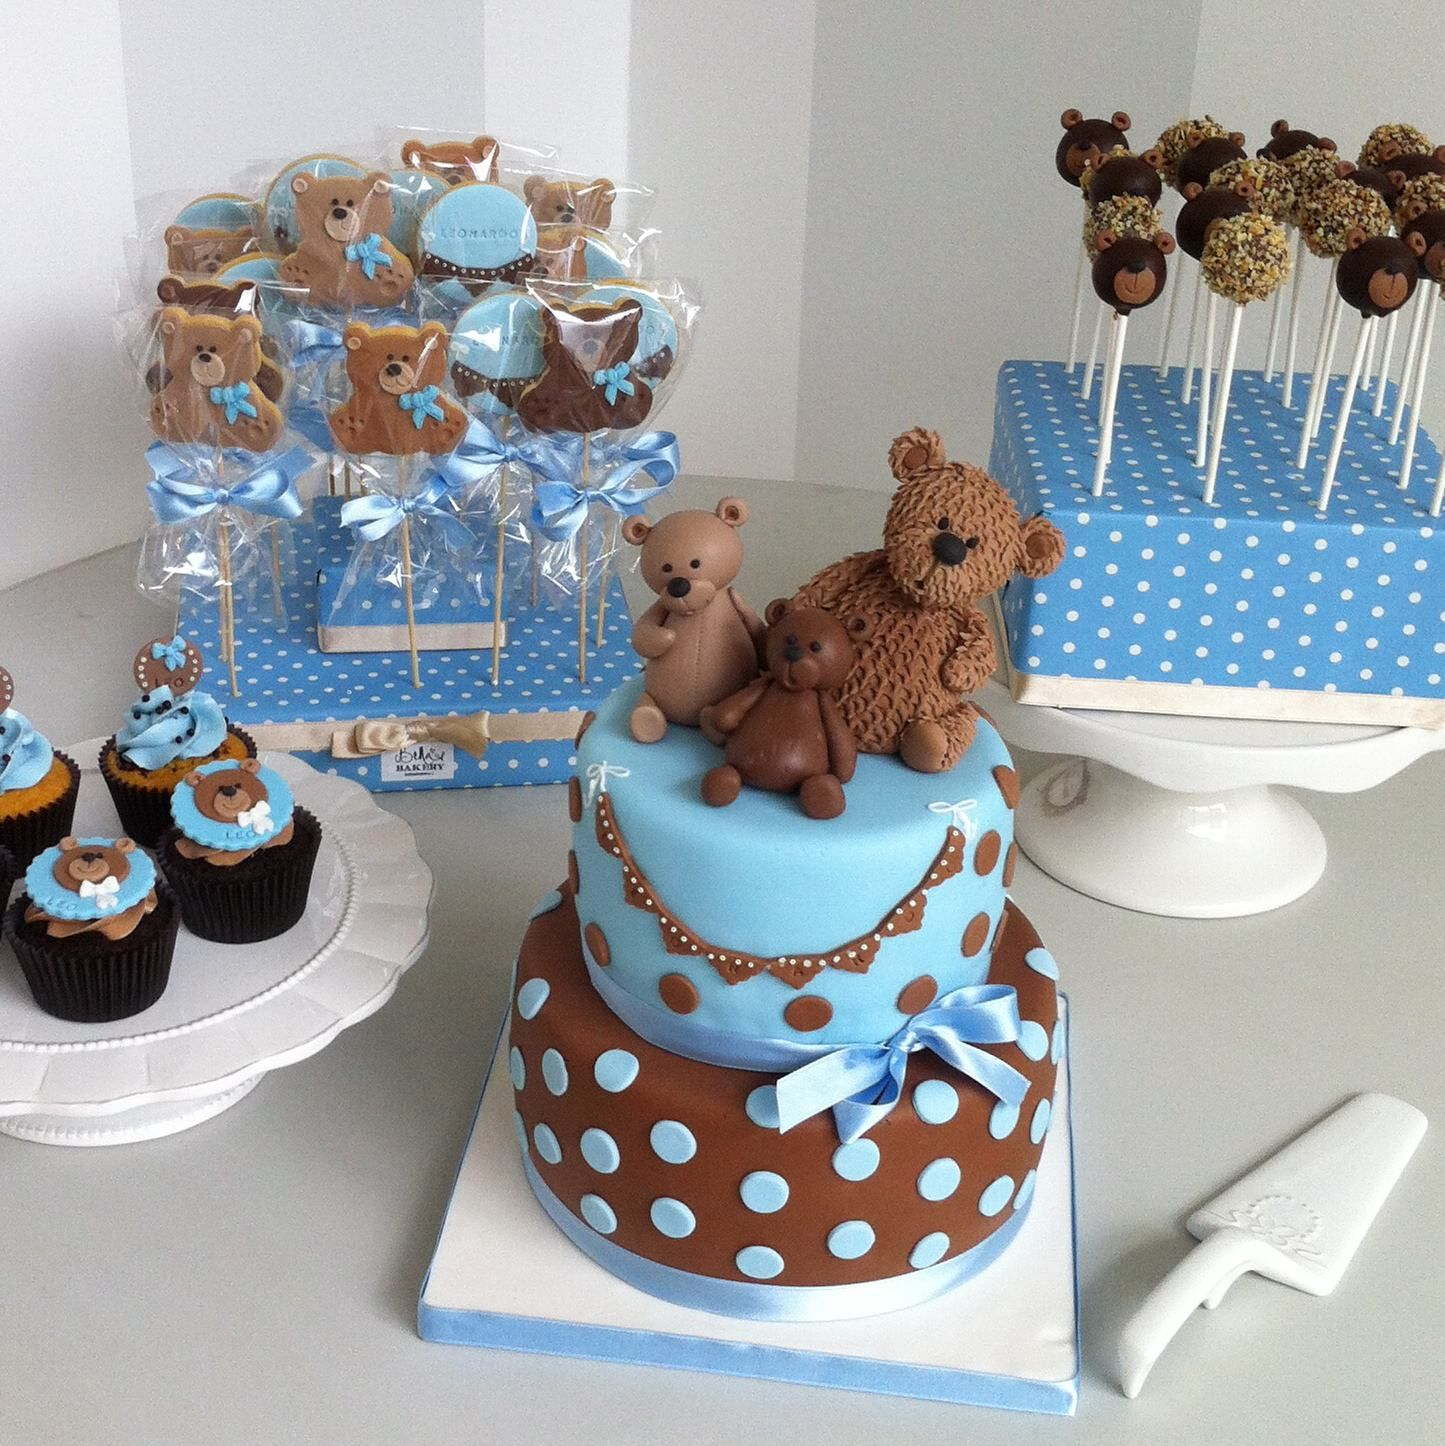 10 Beautiful Blue And White Baby Shower Ideas teddy bear blue white and grey silver with the milkaholic theme 2020